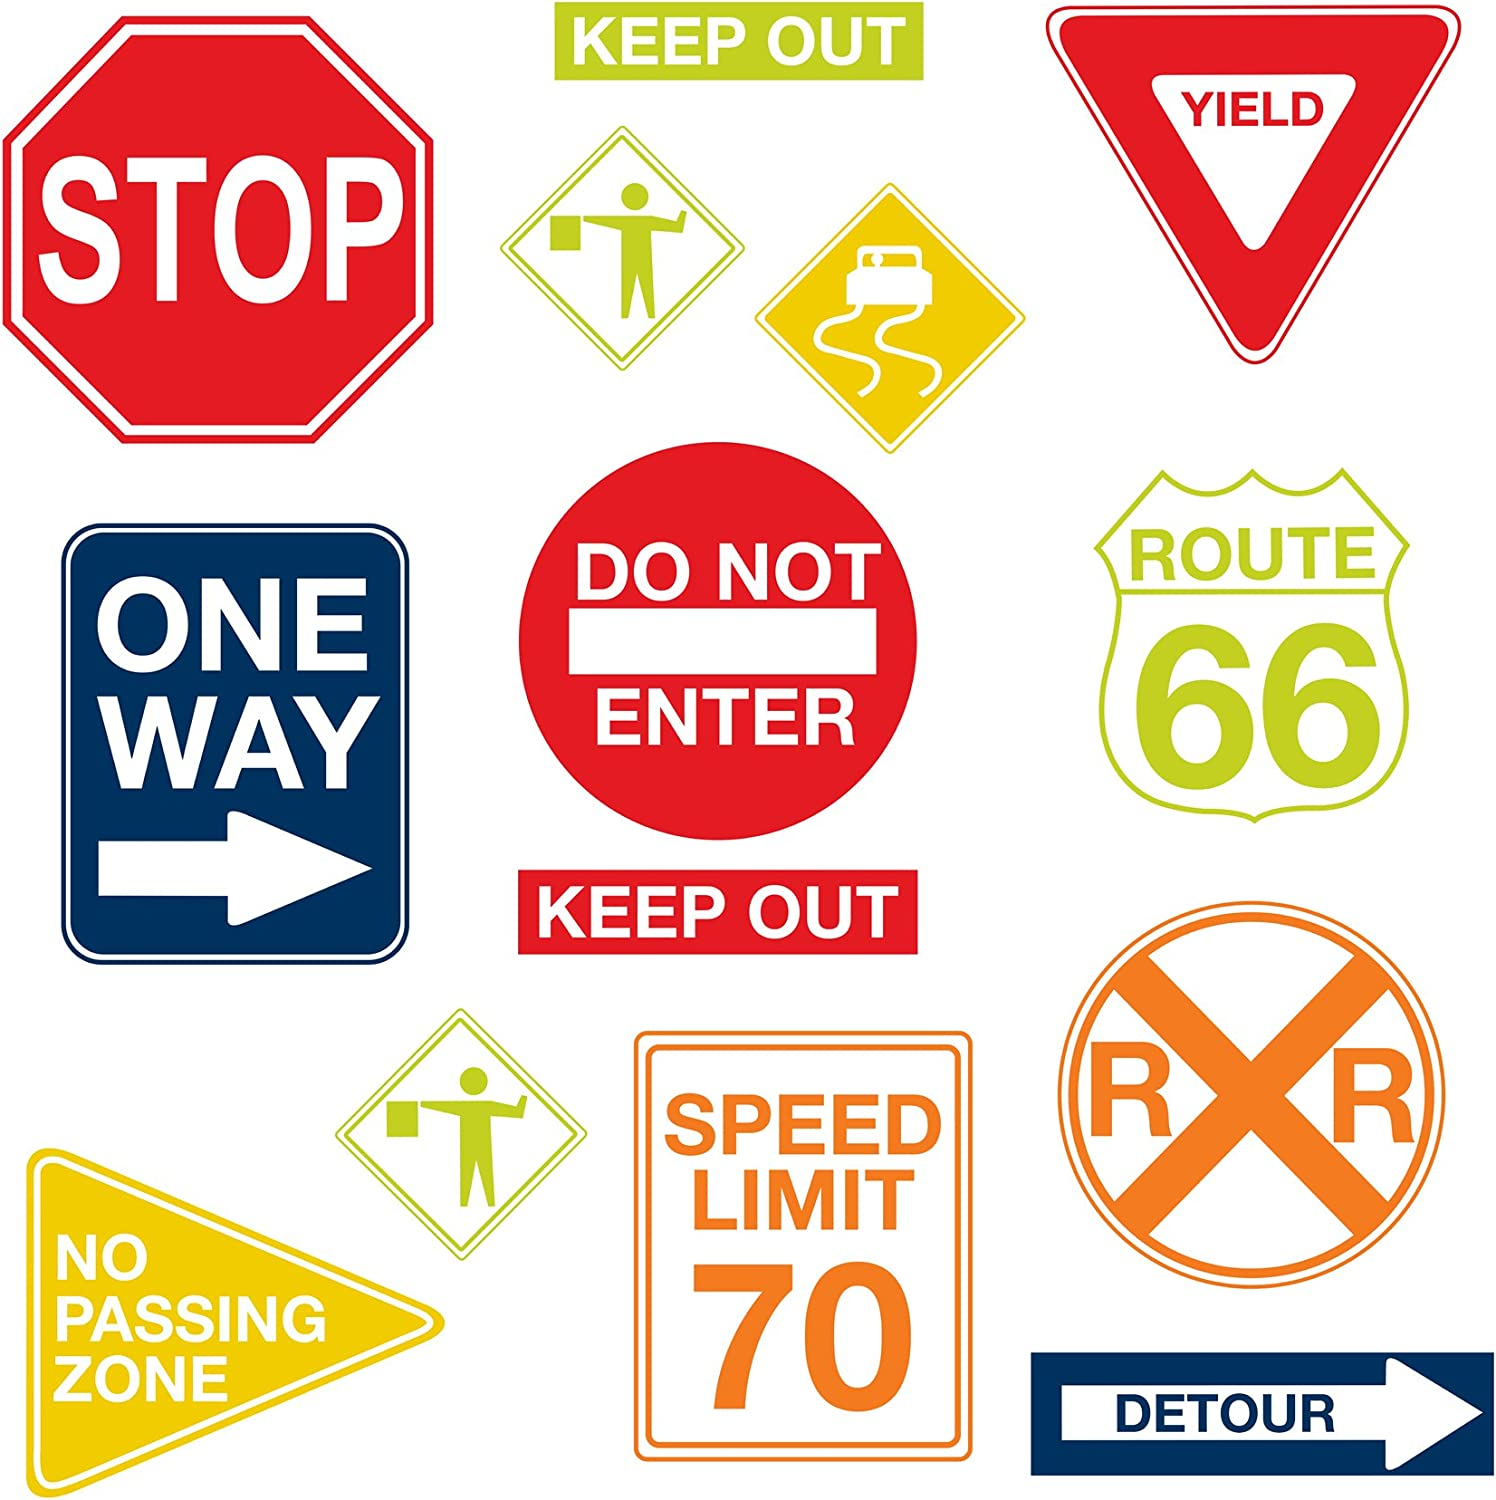 Wall Pops Wpk0617 Road Signs Wall Decals 17 25 Inch By 39 Inch Two Sheets Decorative Wall Appliques Amazon Com